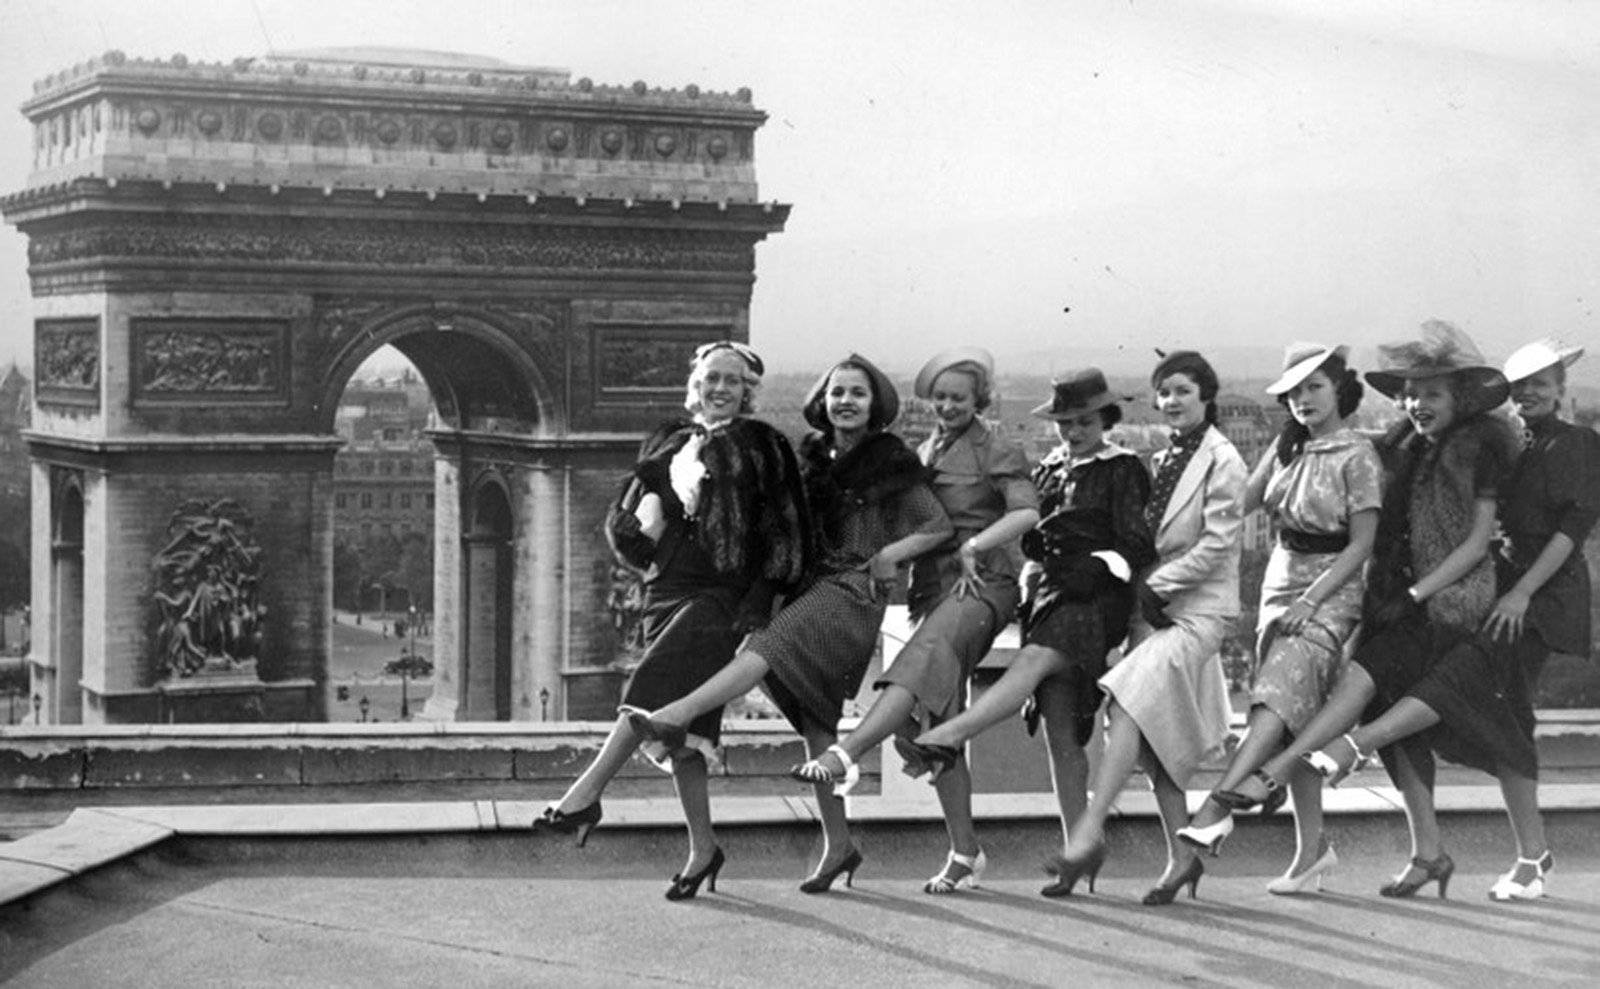 young women posing in front of the arc de triomphe in 1936